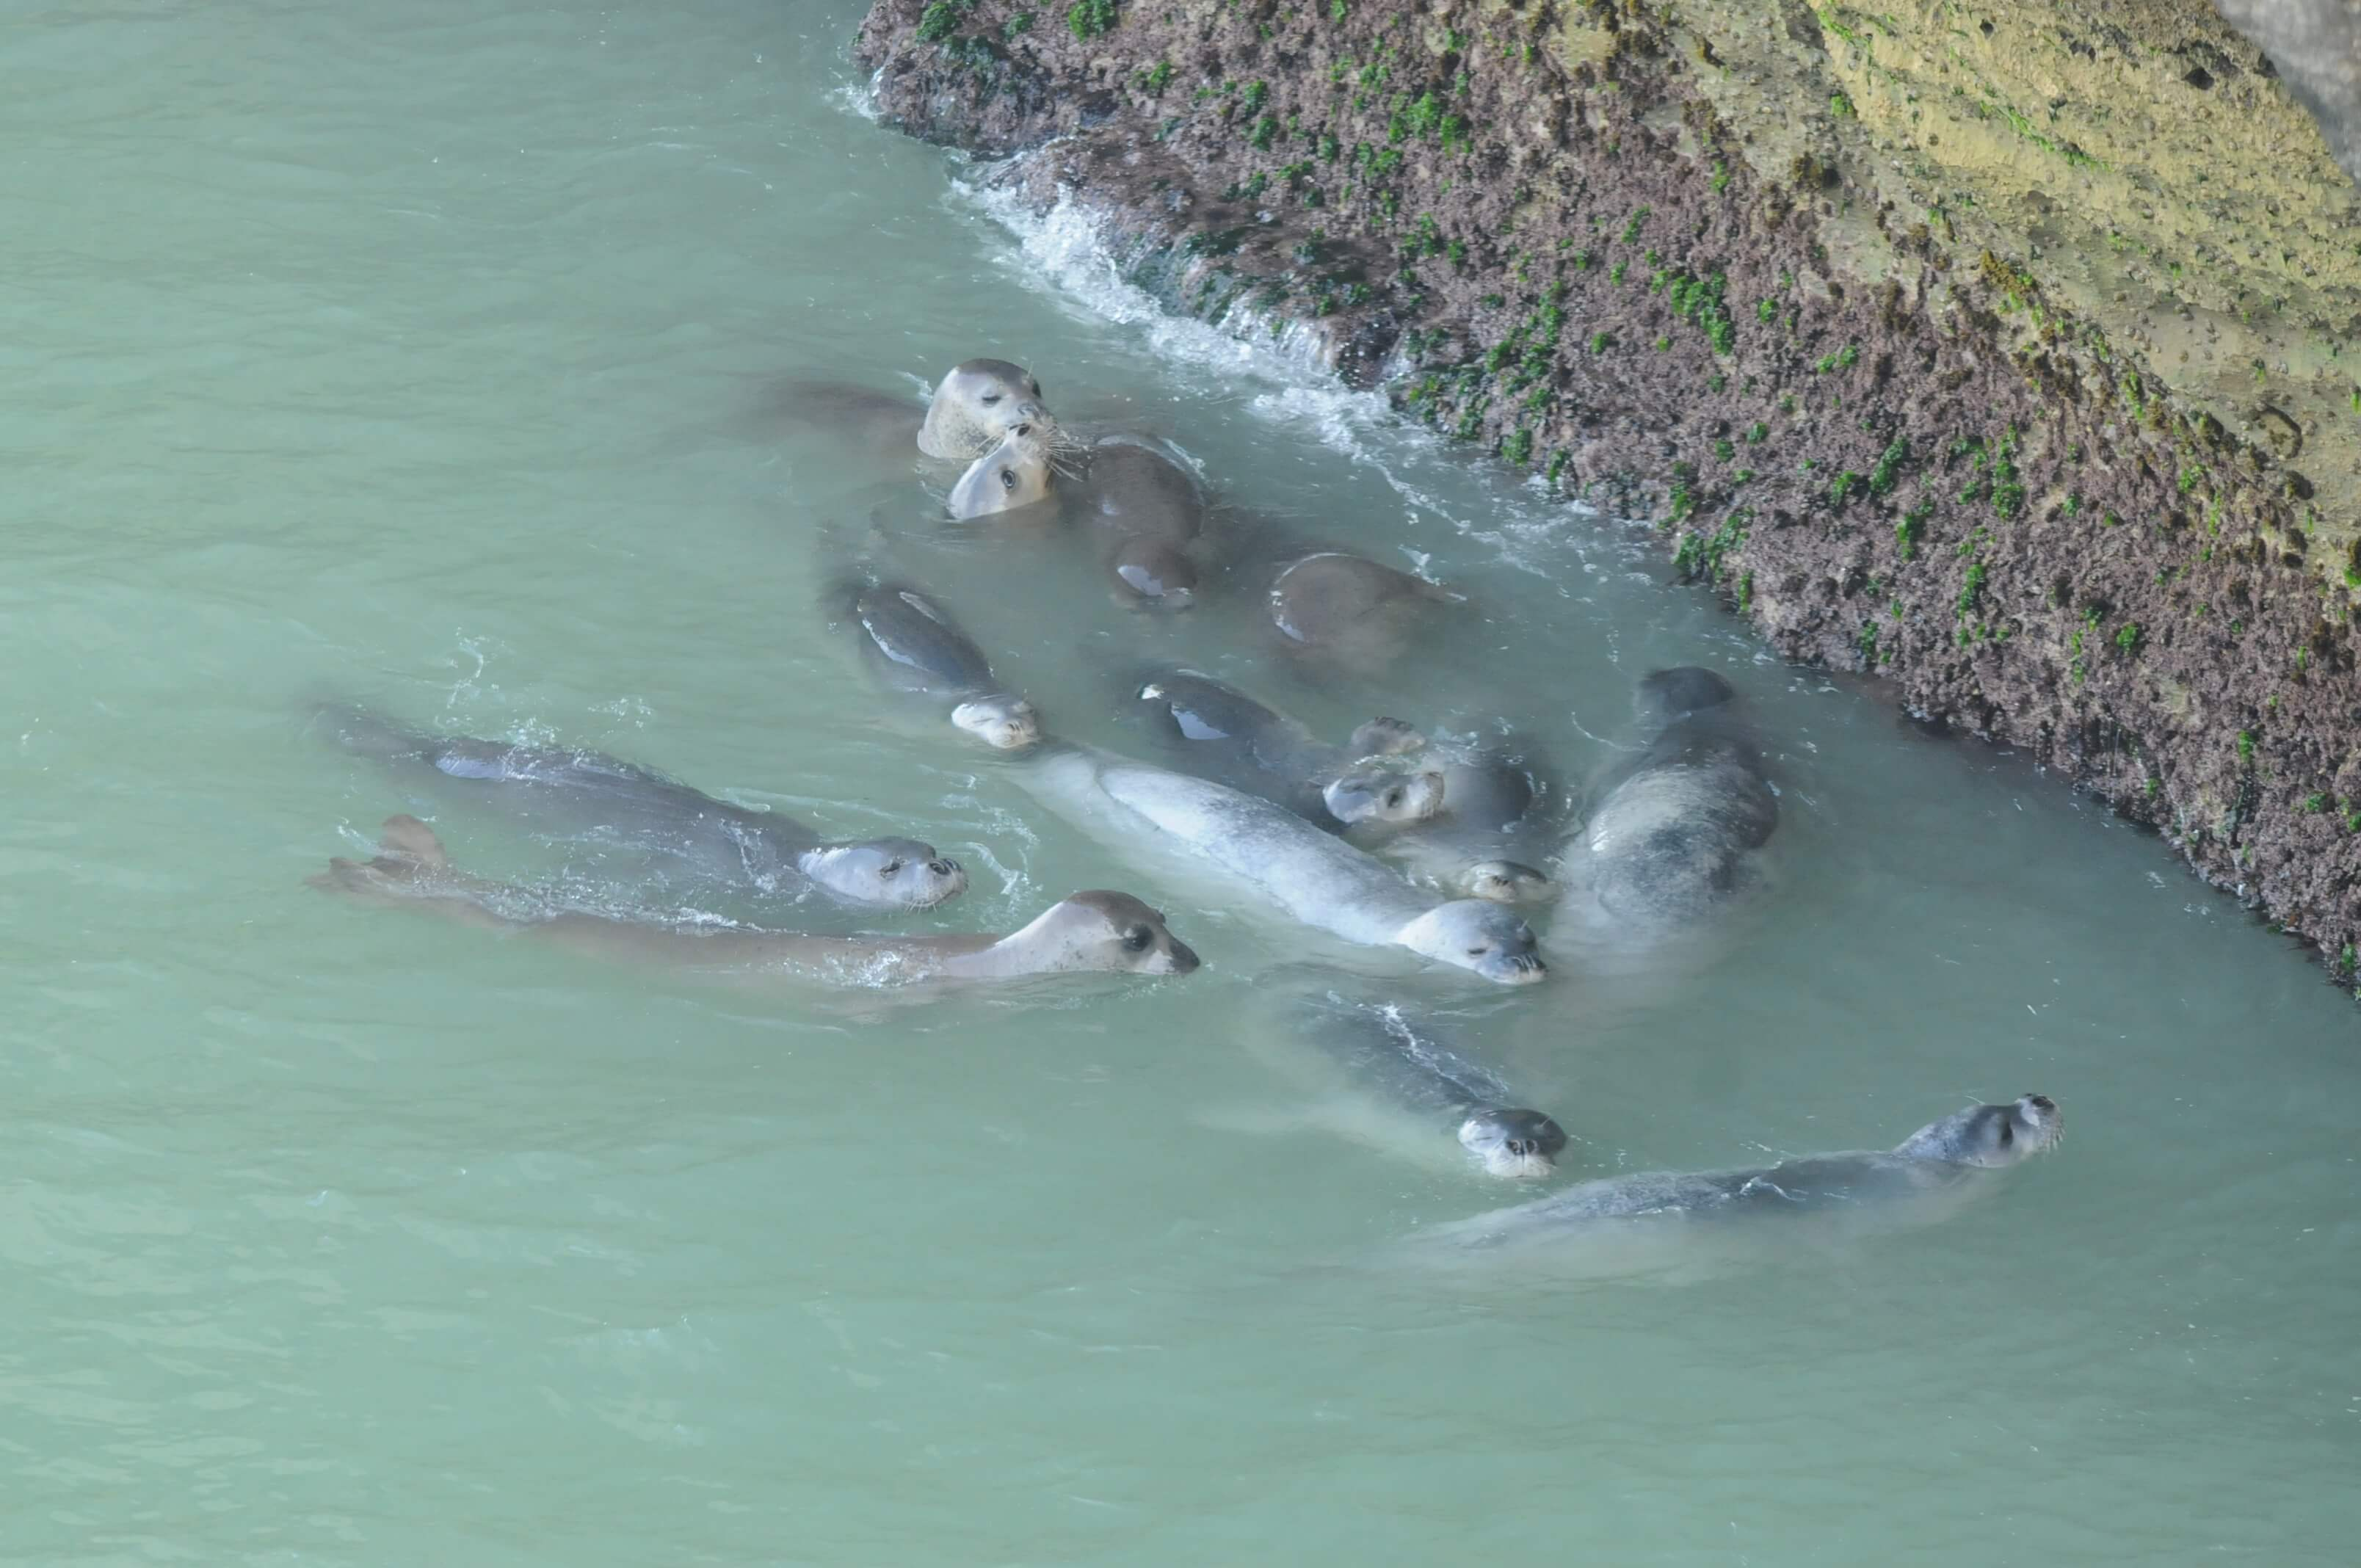 A group of Mediterranean monk seals in the water (Credit: M. Haya, CBD-Habitat).